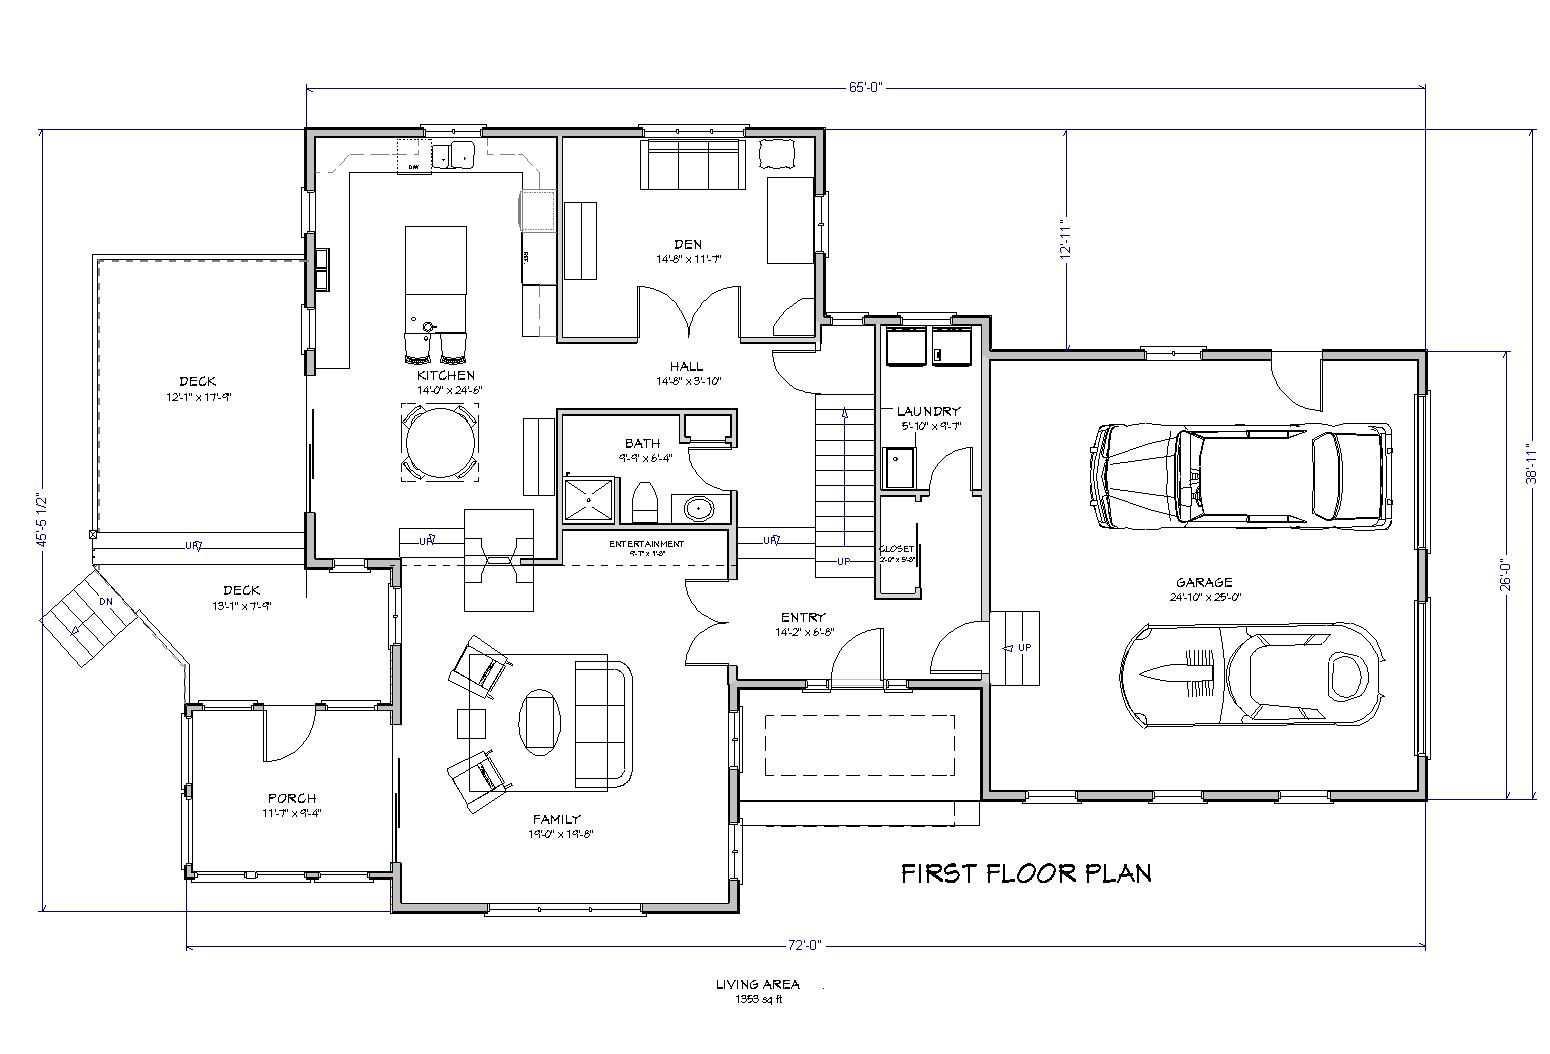 Cape lake house plan 3 bedroom traditional house plan lake house plan the house plan site - Bedroom house design and plans ...